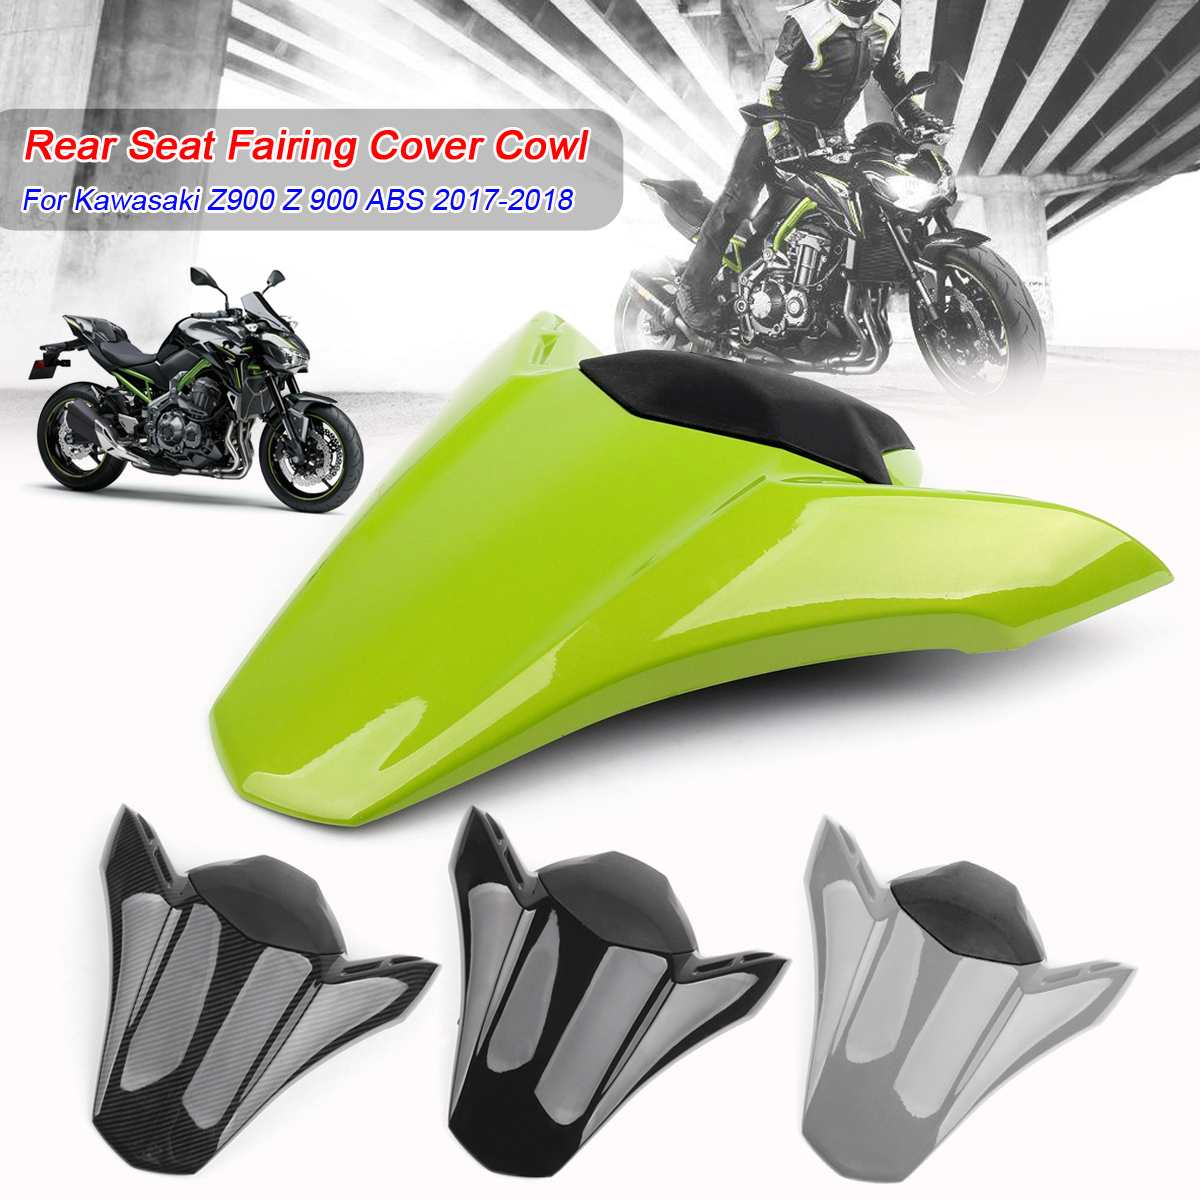 New Motorcycle Pit Dirt Bike Rear Seat Fairing Cover Tail Cowl Fairing Seat Cover For Kawasaki